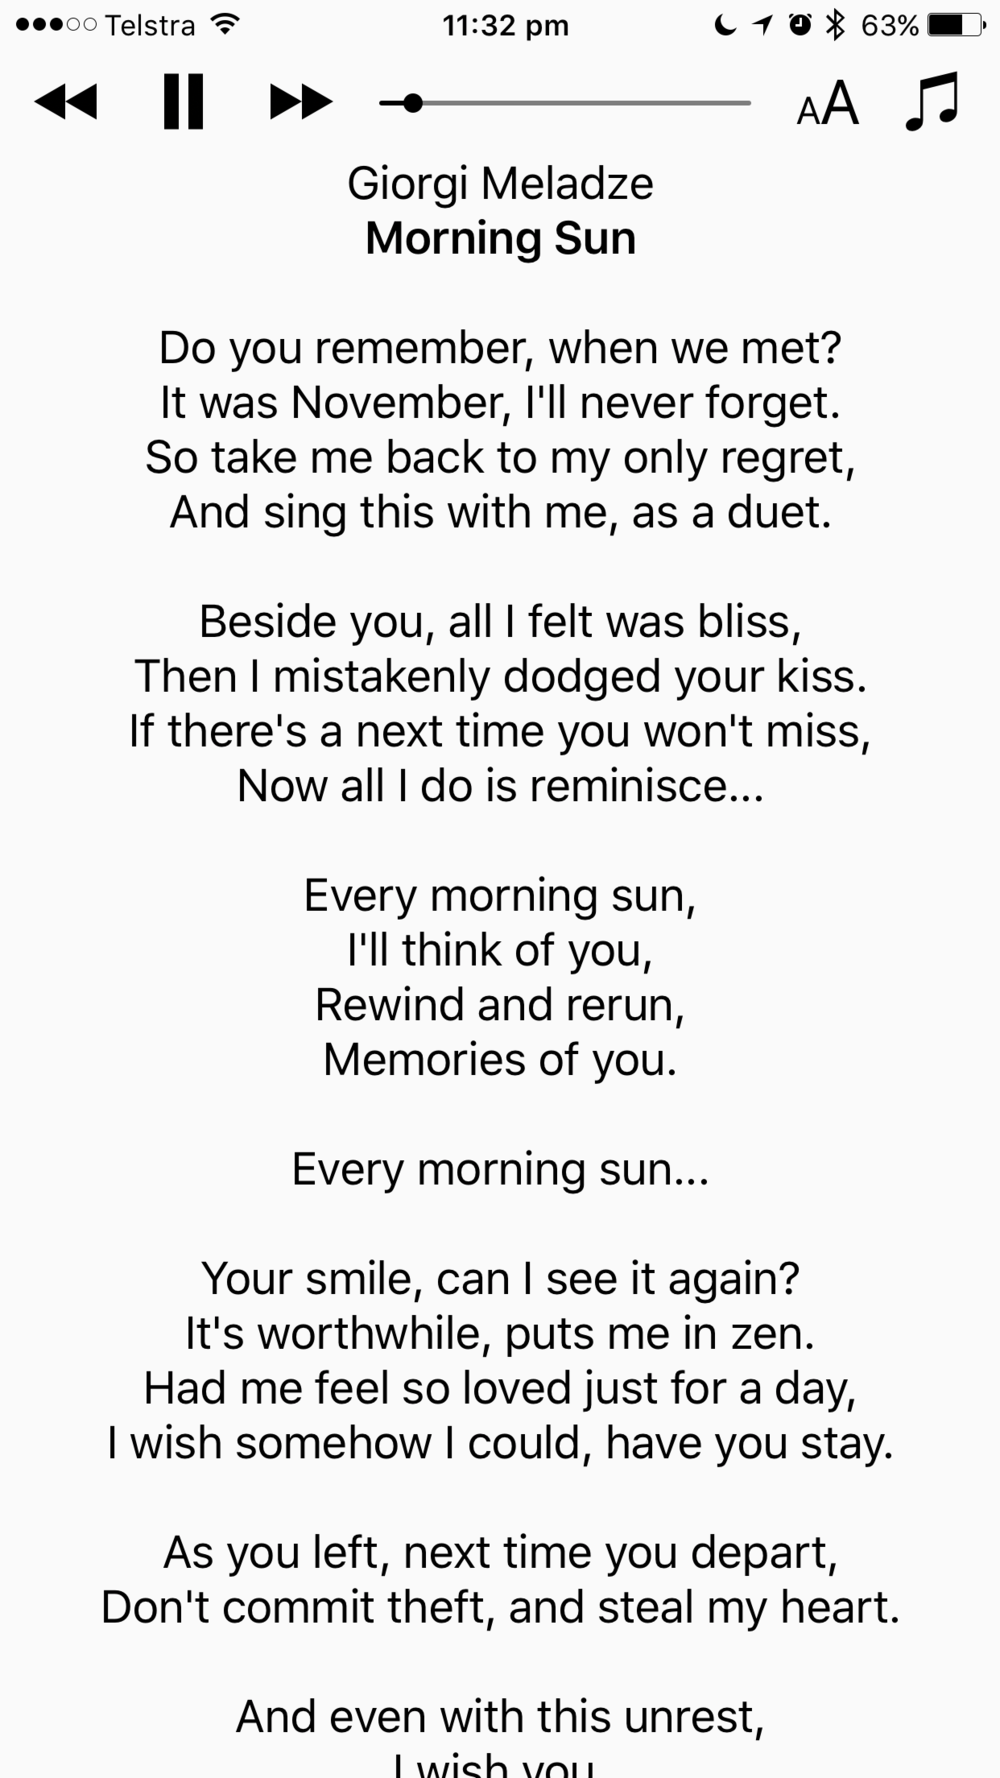 lyrics_view_iphone_screenshot_1.PNG